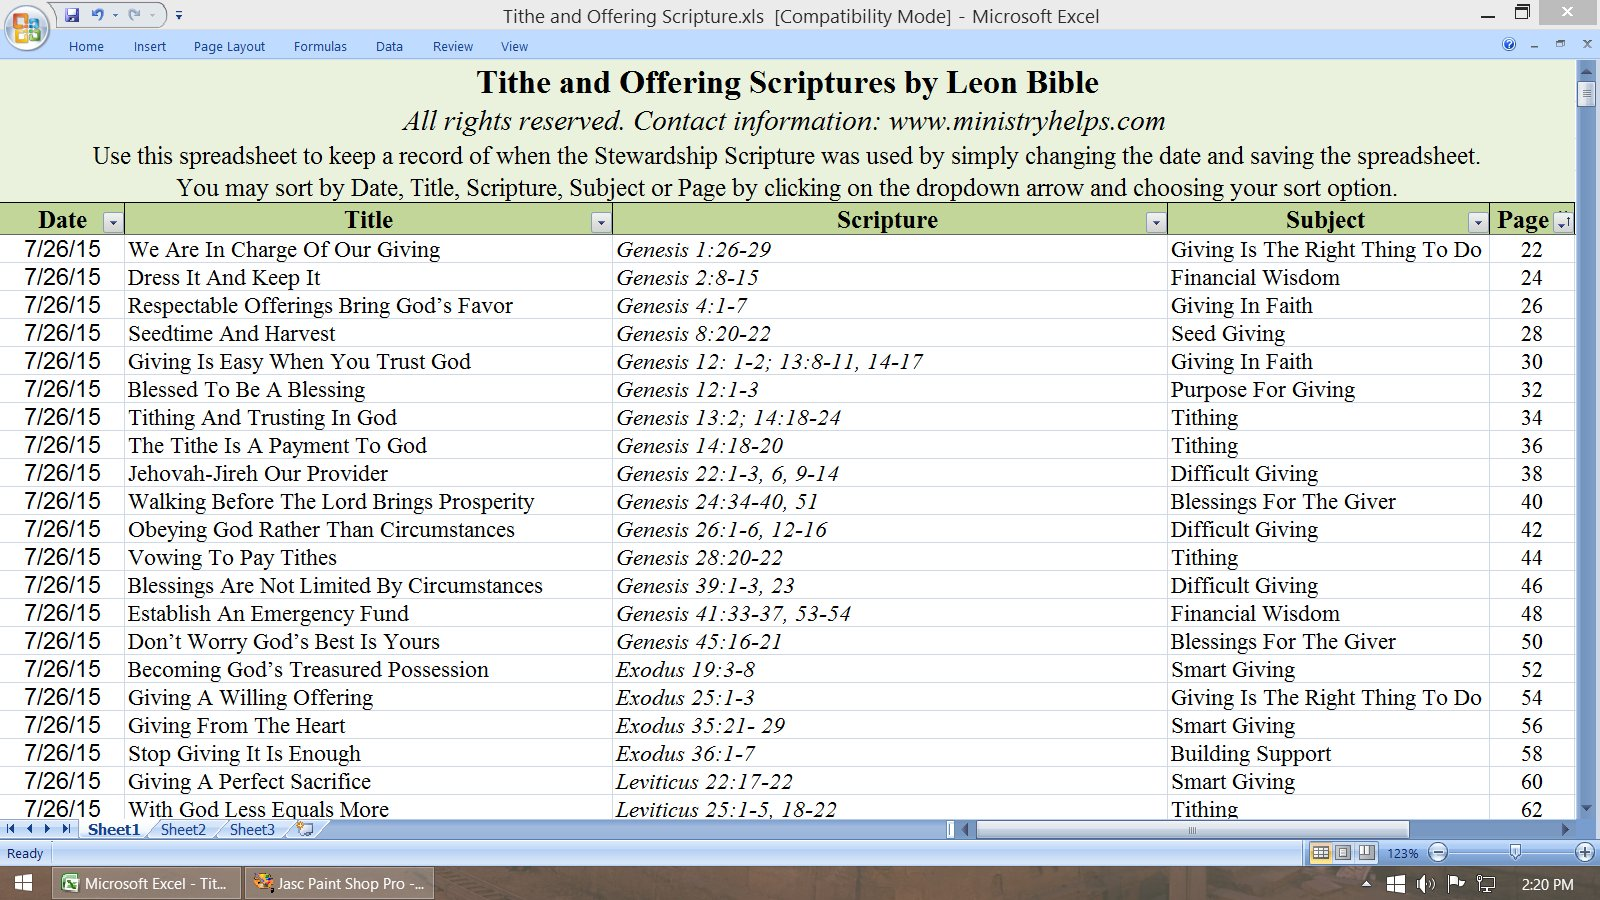 Tithe and Offering Scriptures Excel Spreadsheet